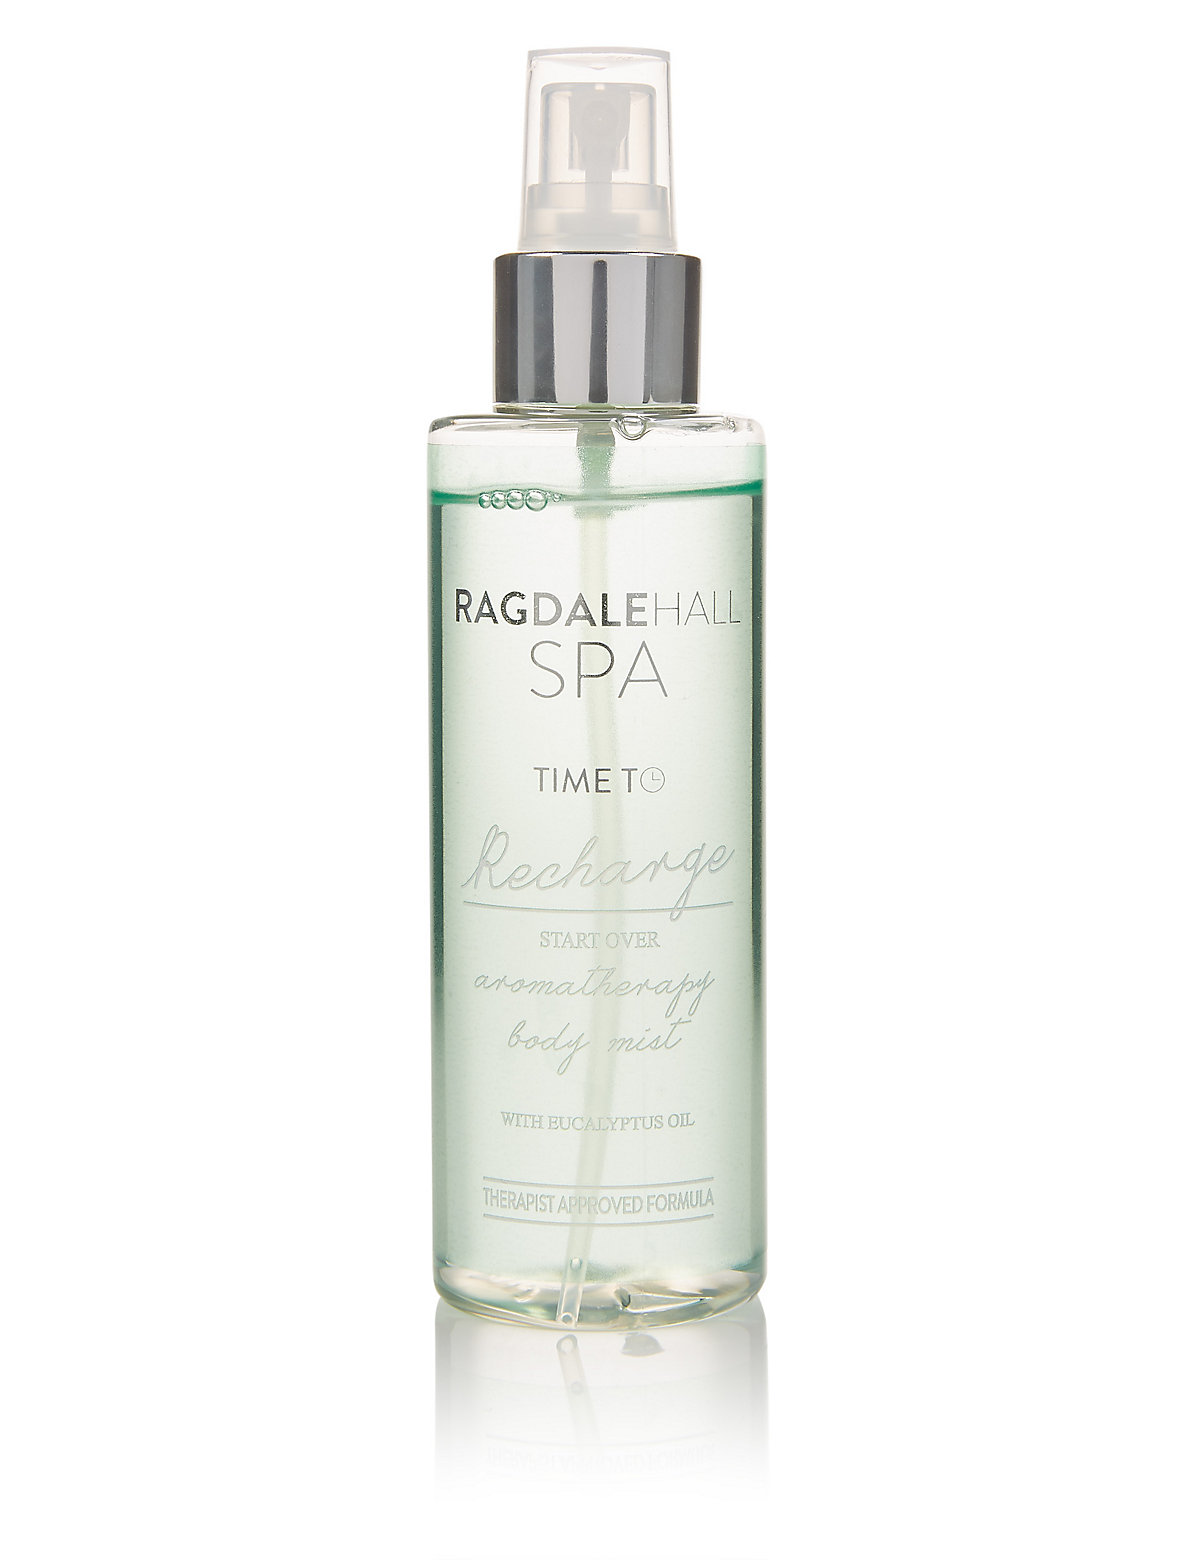 Ragdale Hall Recharge Aromatherapy Body Mist 150ml